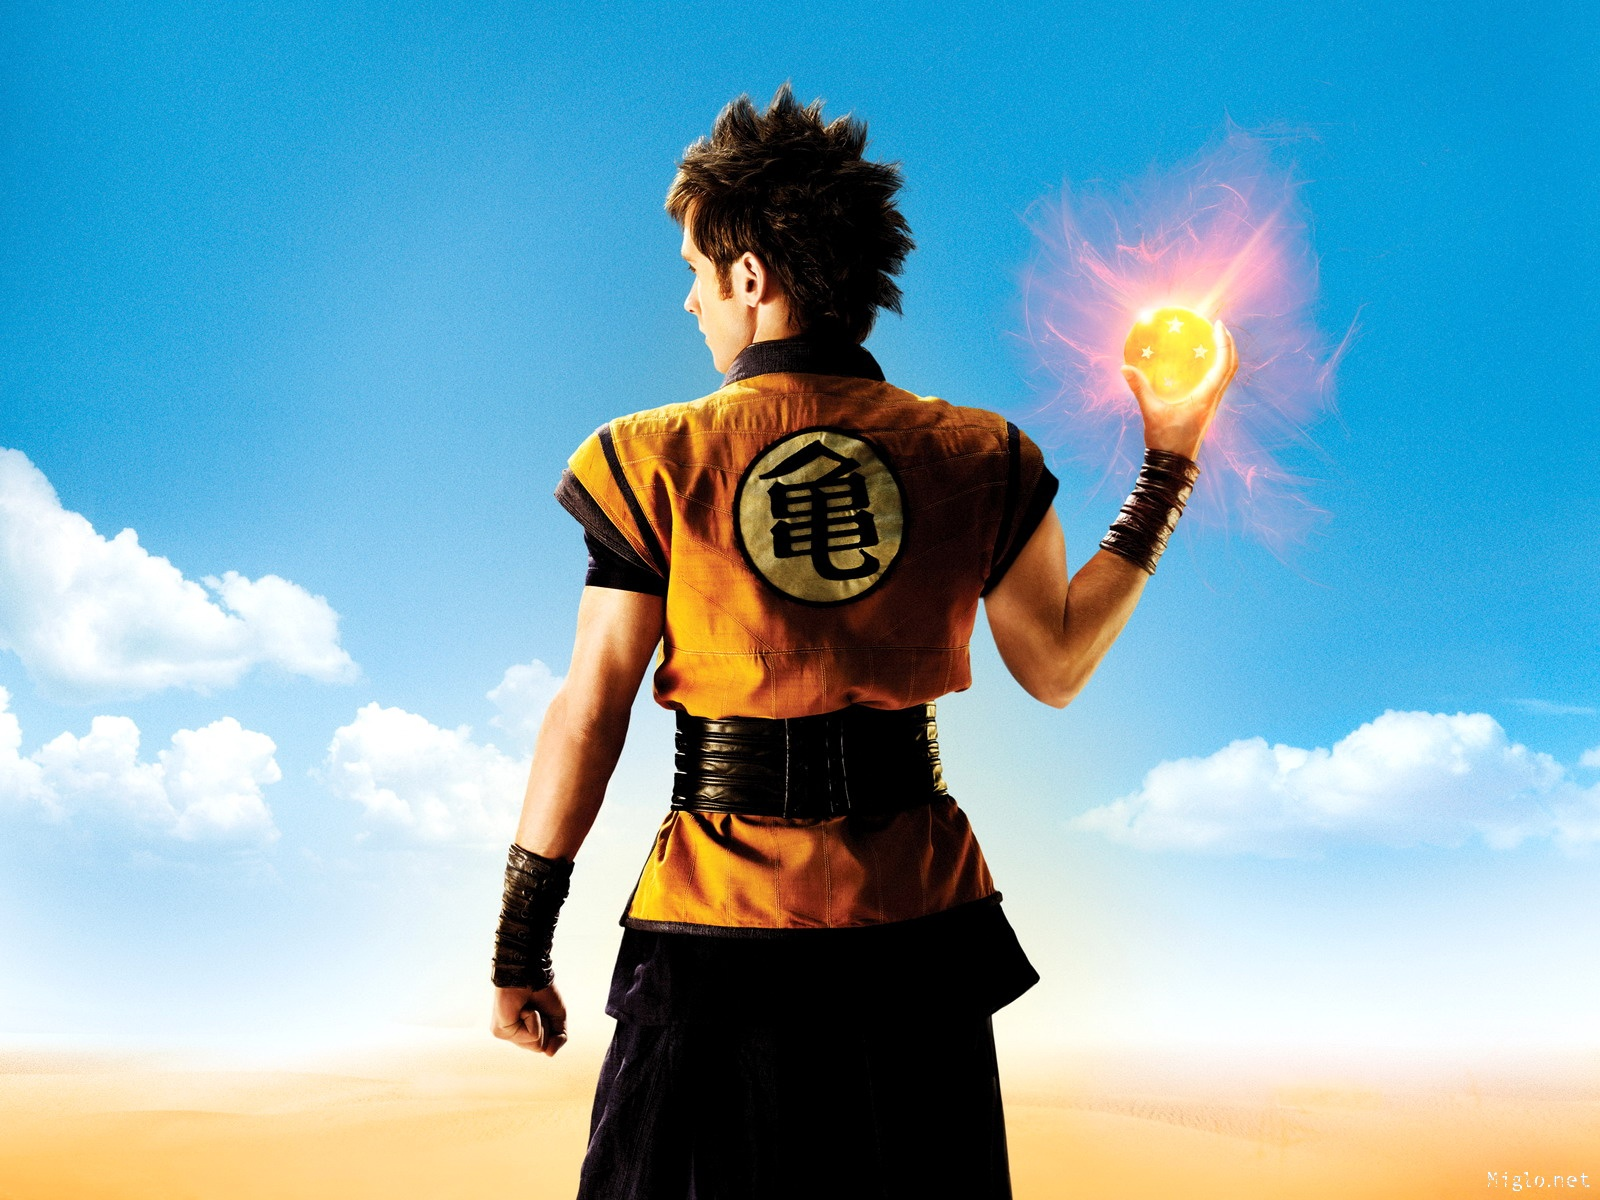 Fond d'écran Dragon ball Z HD | fonds d'écran images wallpapers